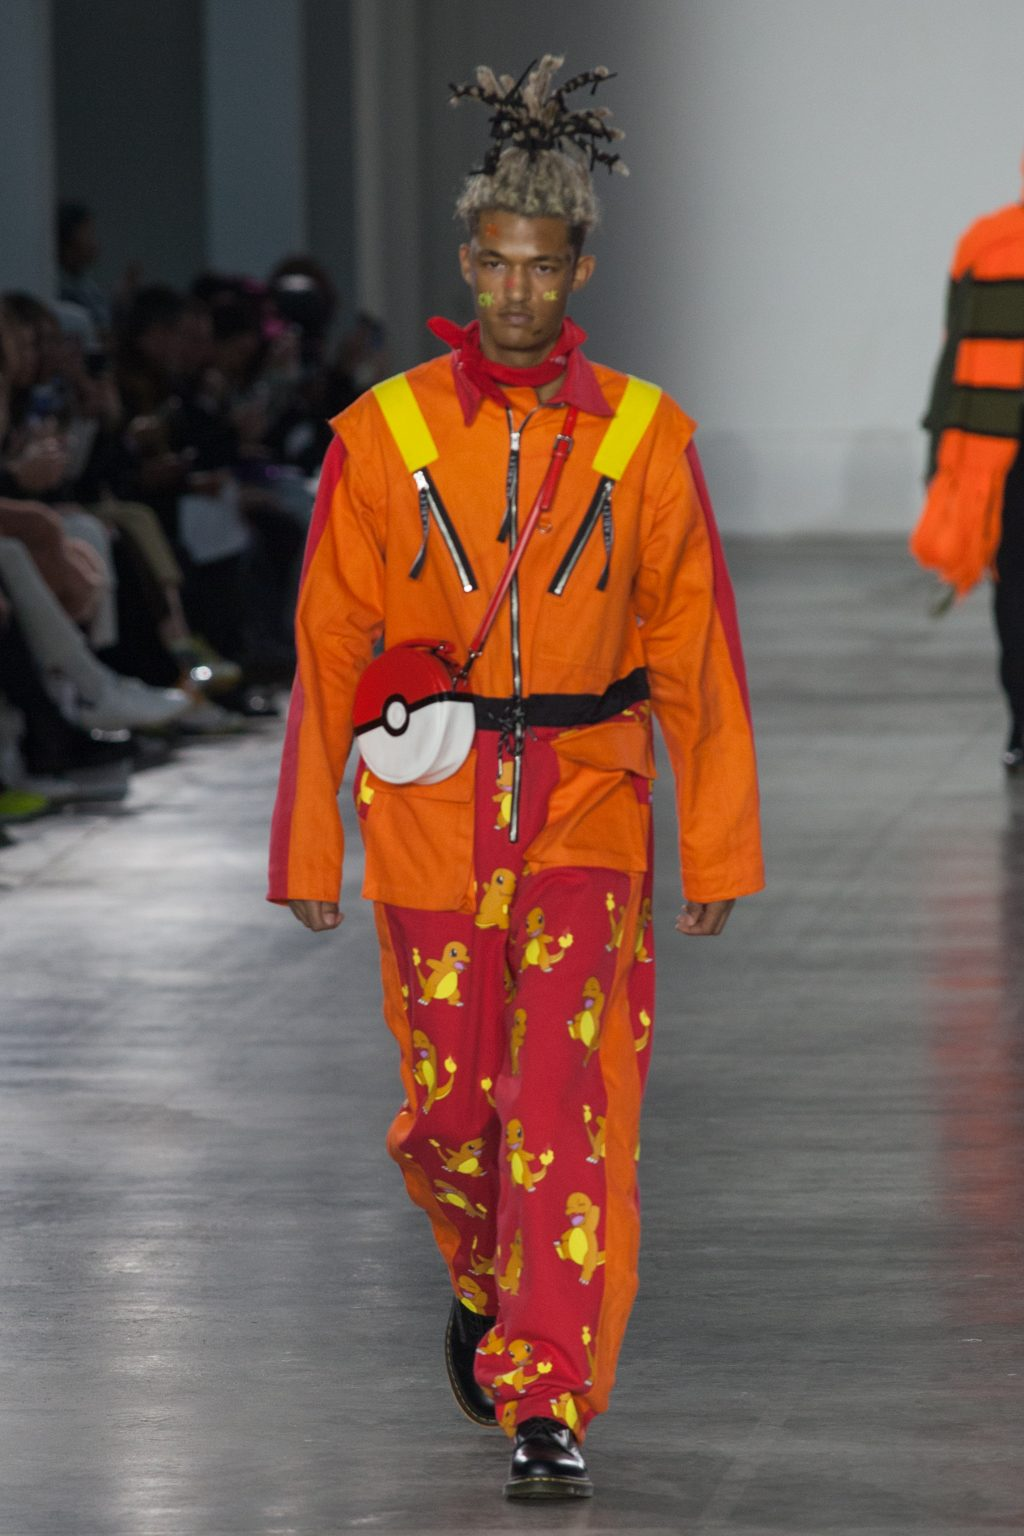 LFWM-AW19-Bobby-Abley-Huw-Jenkins-The-Upcoming-2-1024x1536.jpg